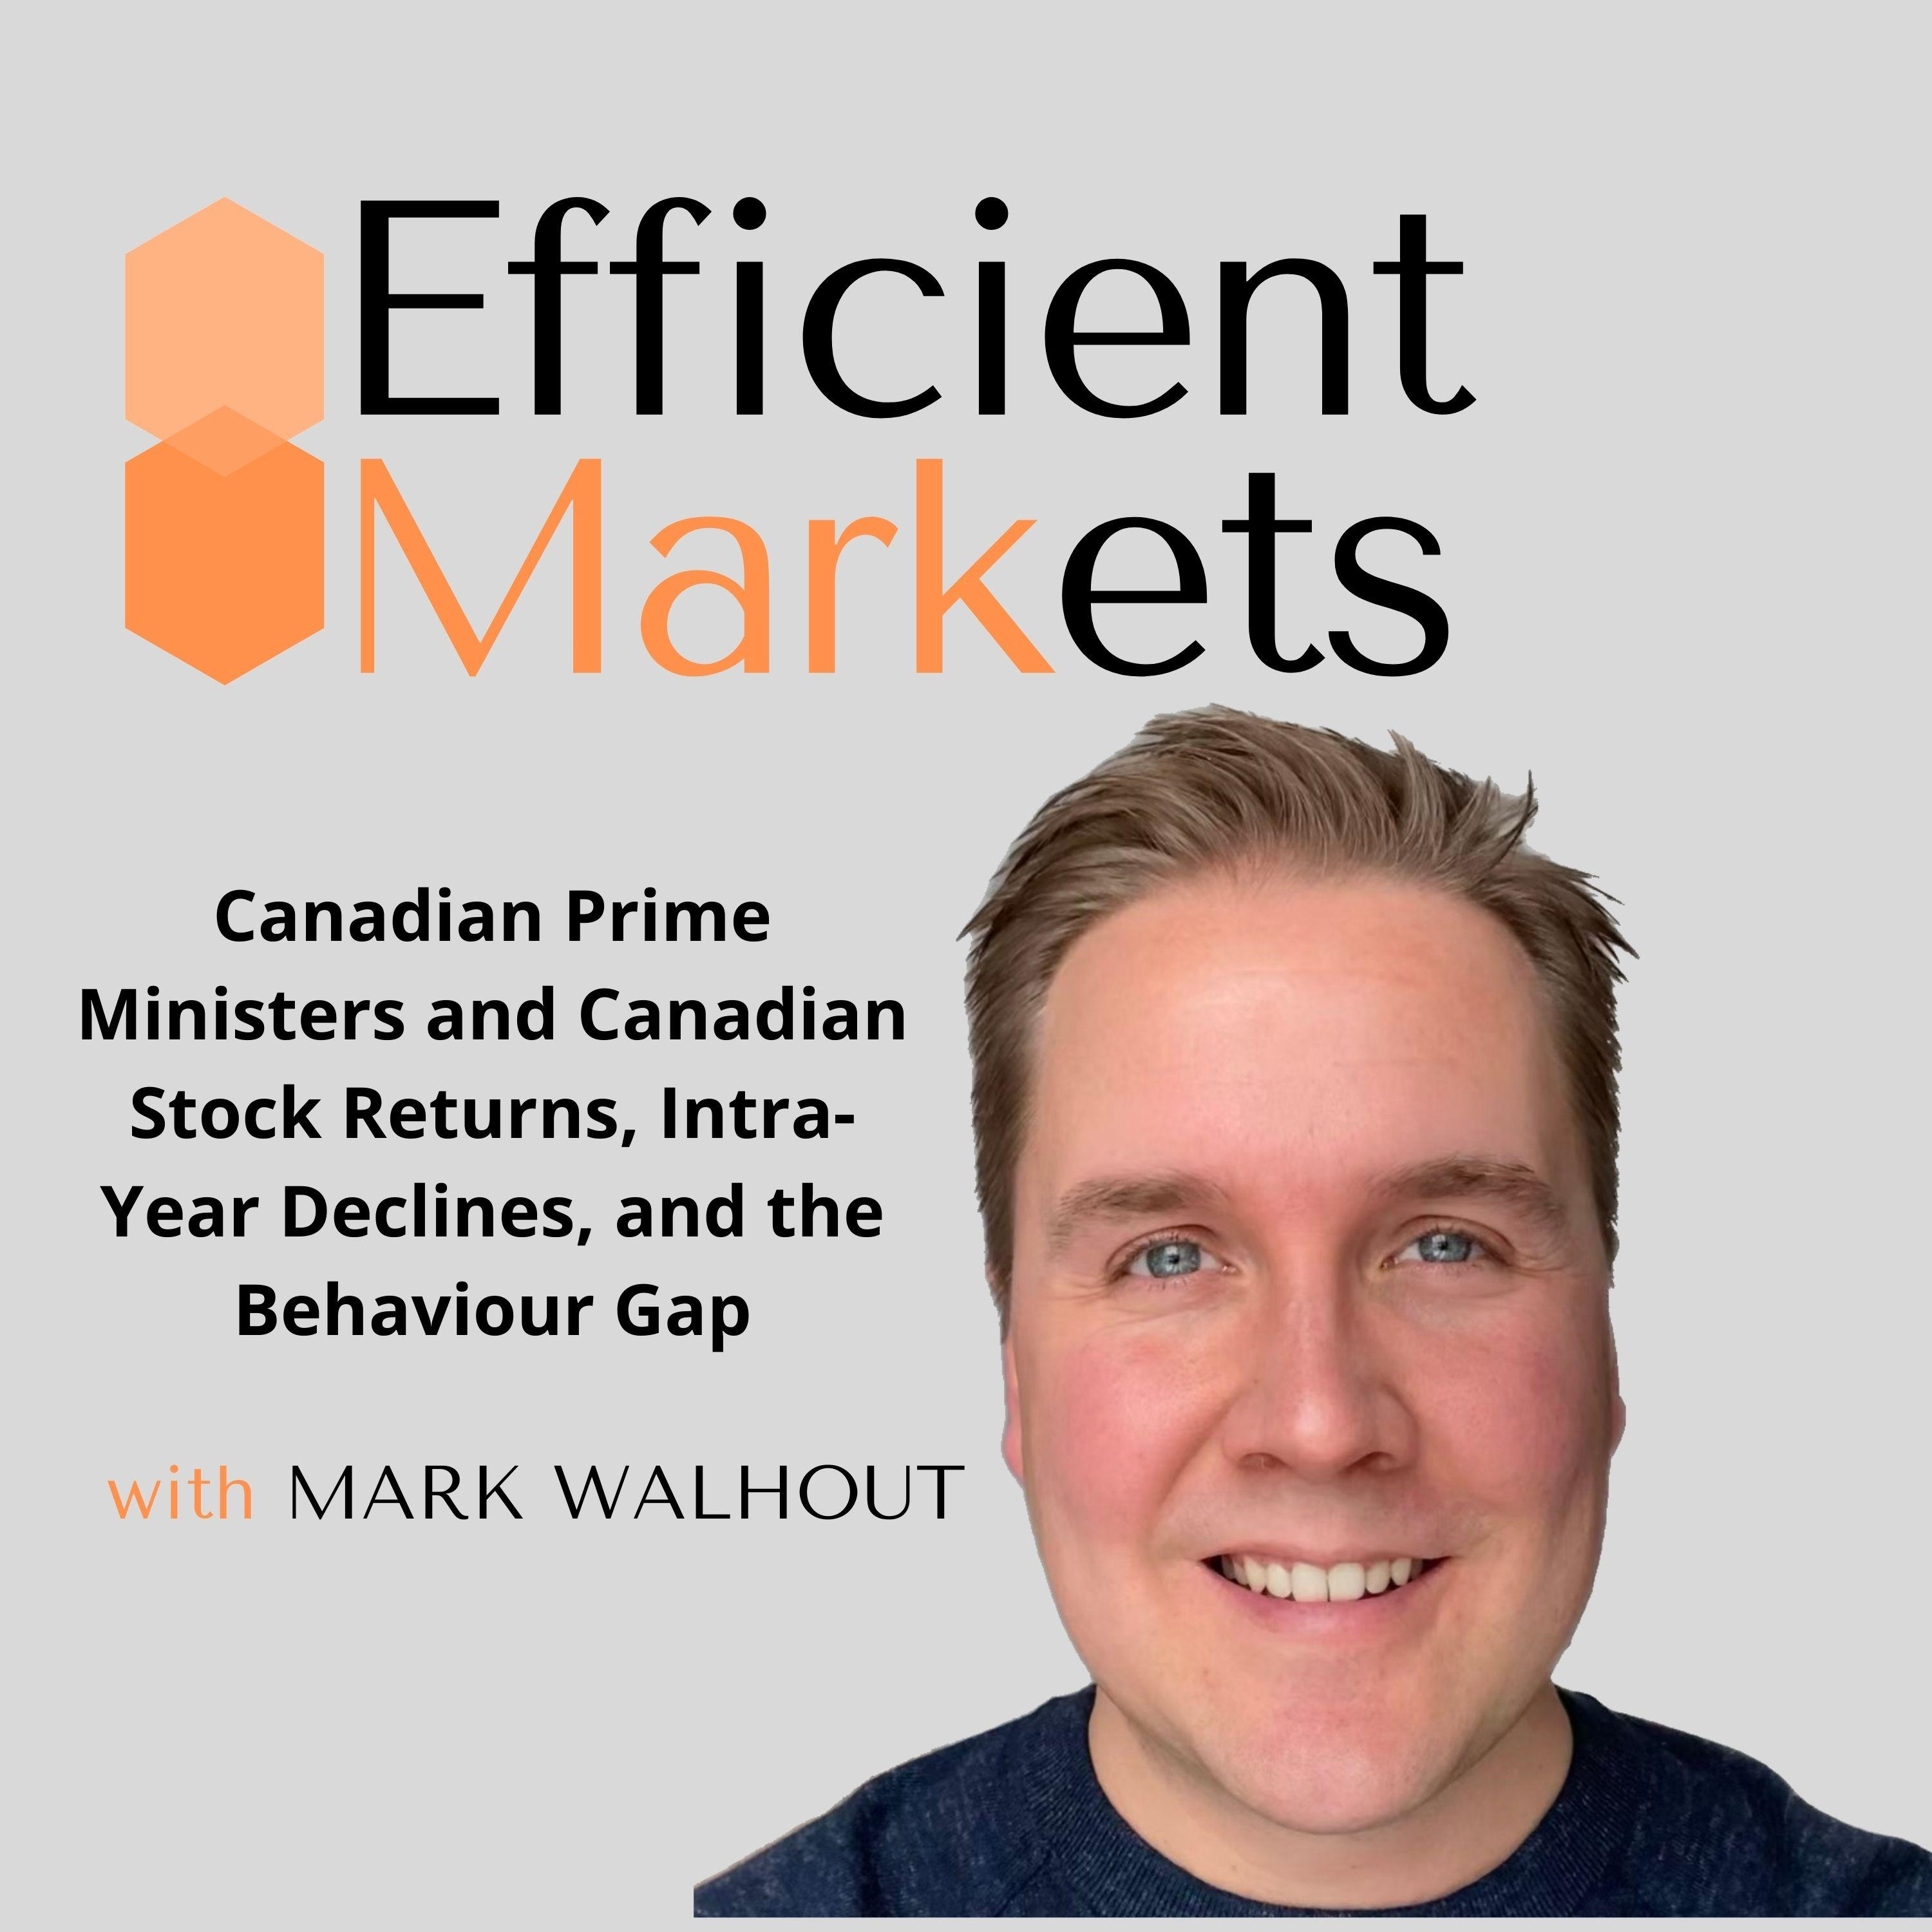 Canadian Prime Ministers and Canadian Stock Returns, Intra-Year Declines, and the Behaviour Gap Thumbnail